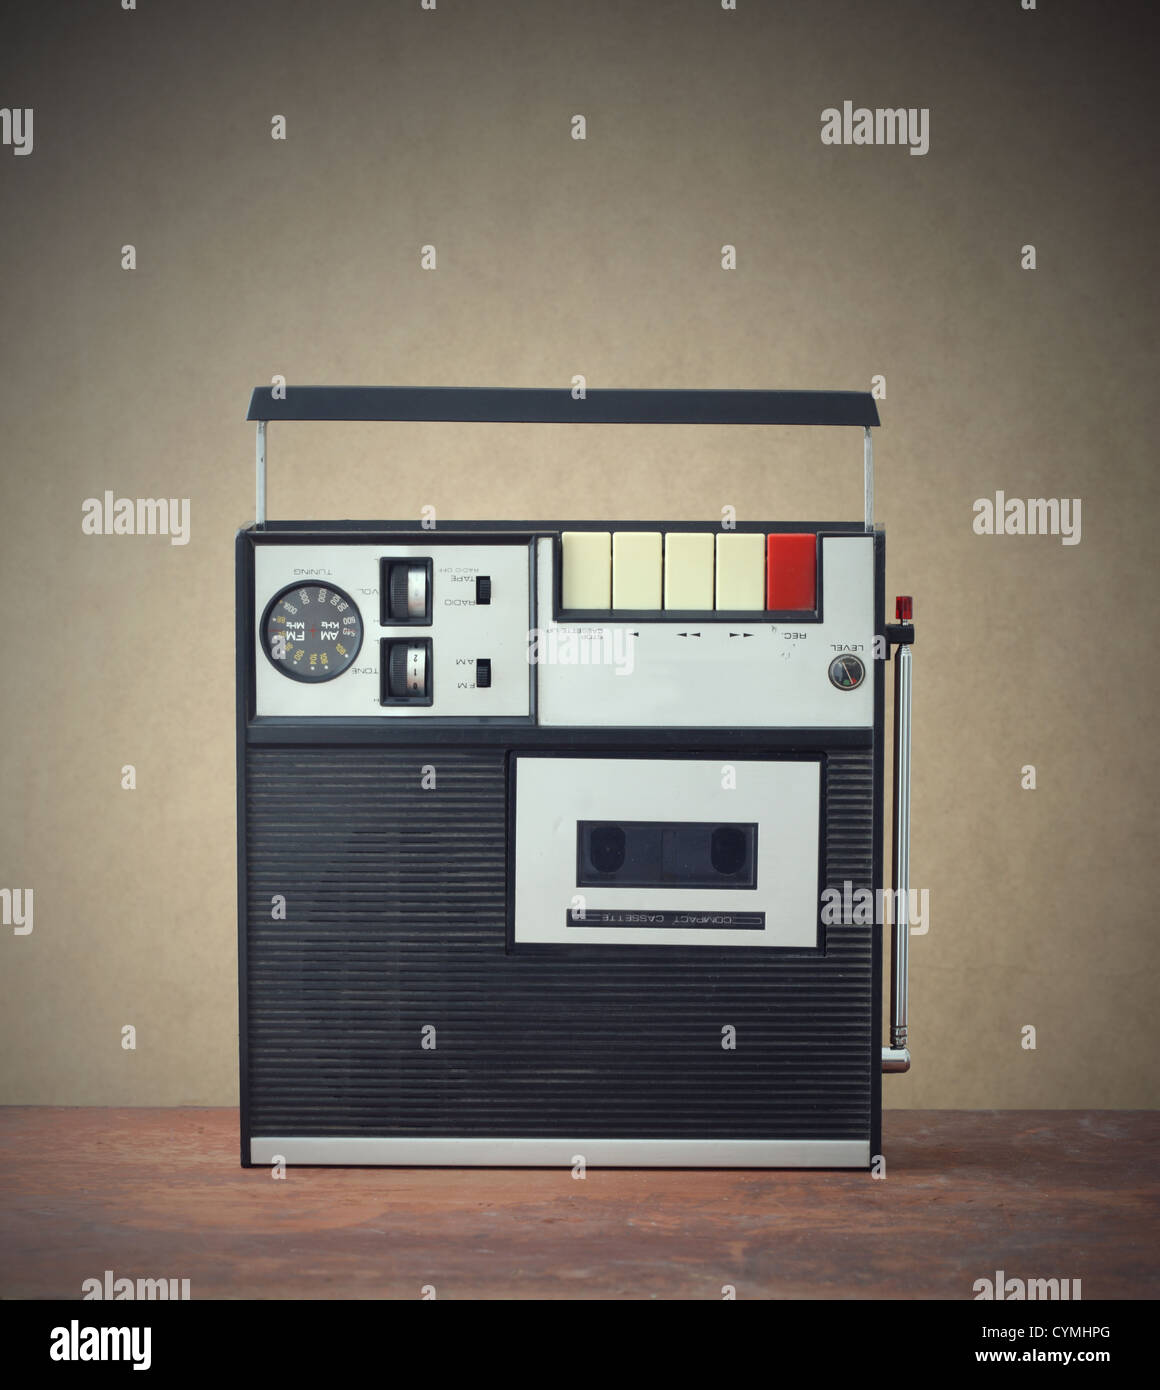 old monophonic cassette recorder from the early 1970s - Stock Image